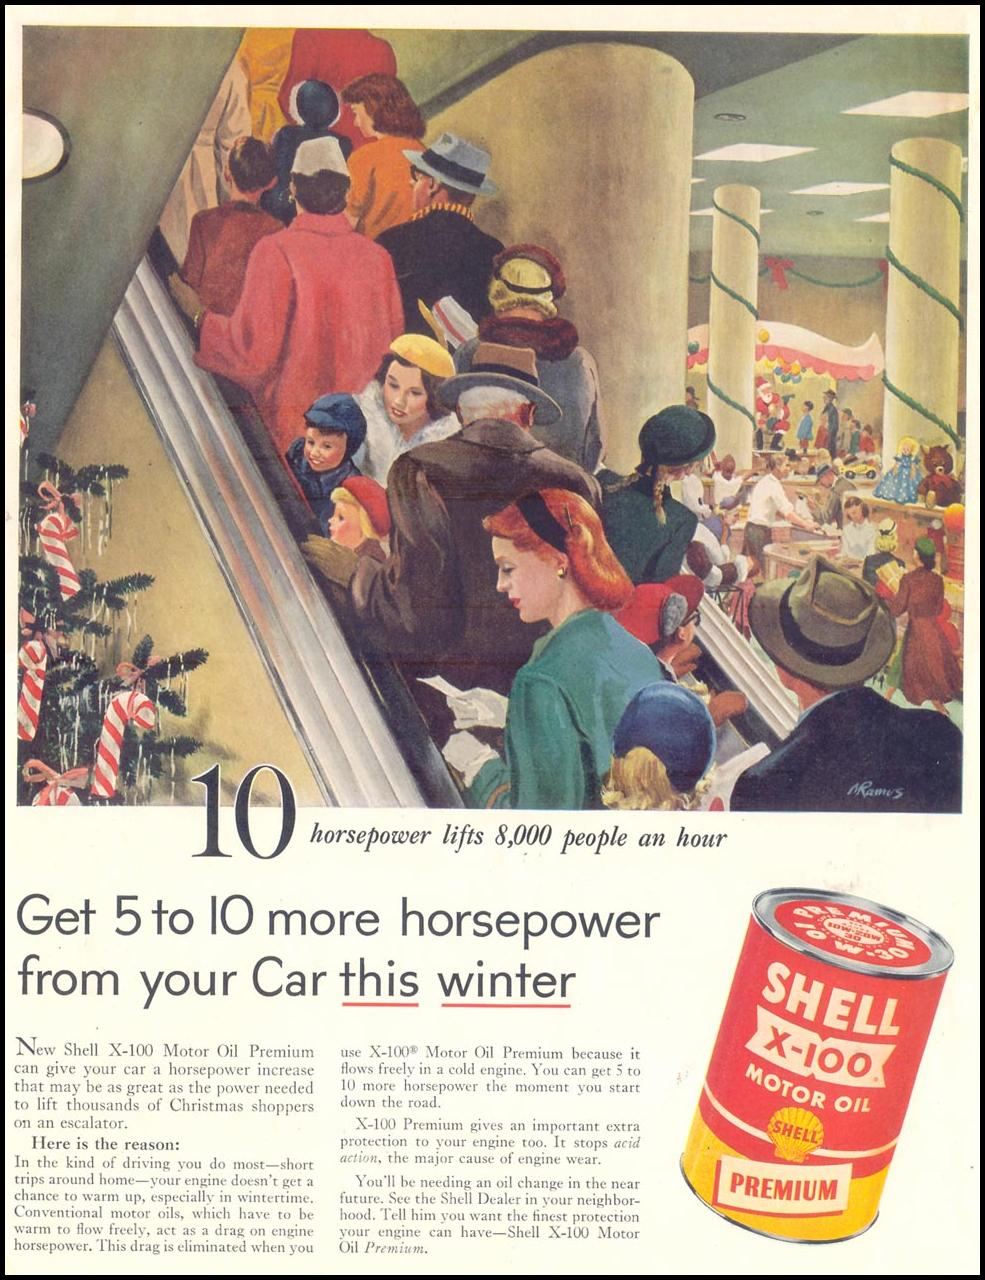 SHELL X-100 MOTOR OIL SATURDAY EVENING POST 12/10/1955 p. 2